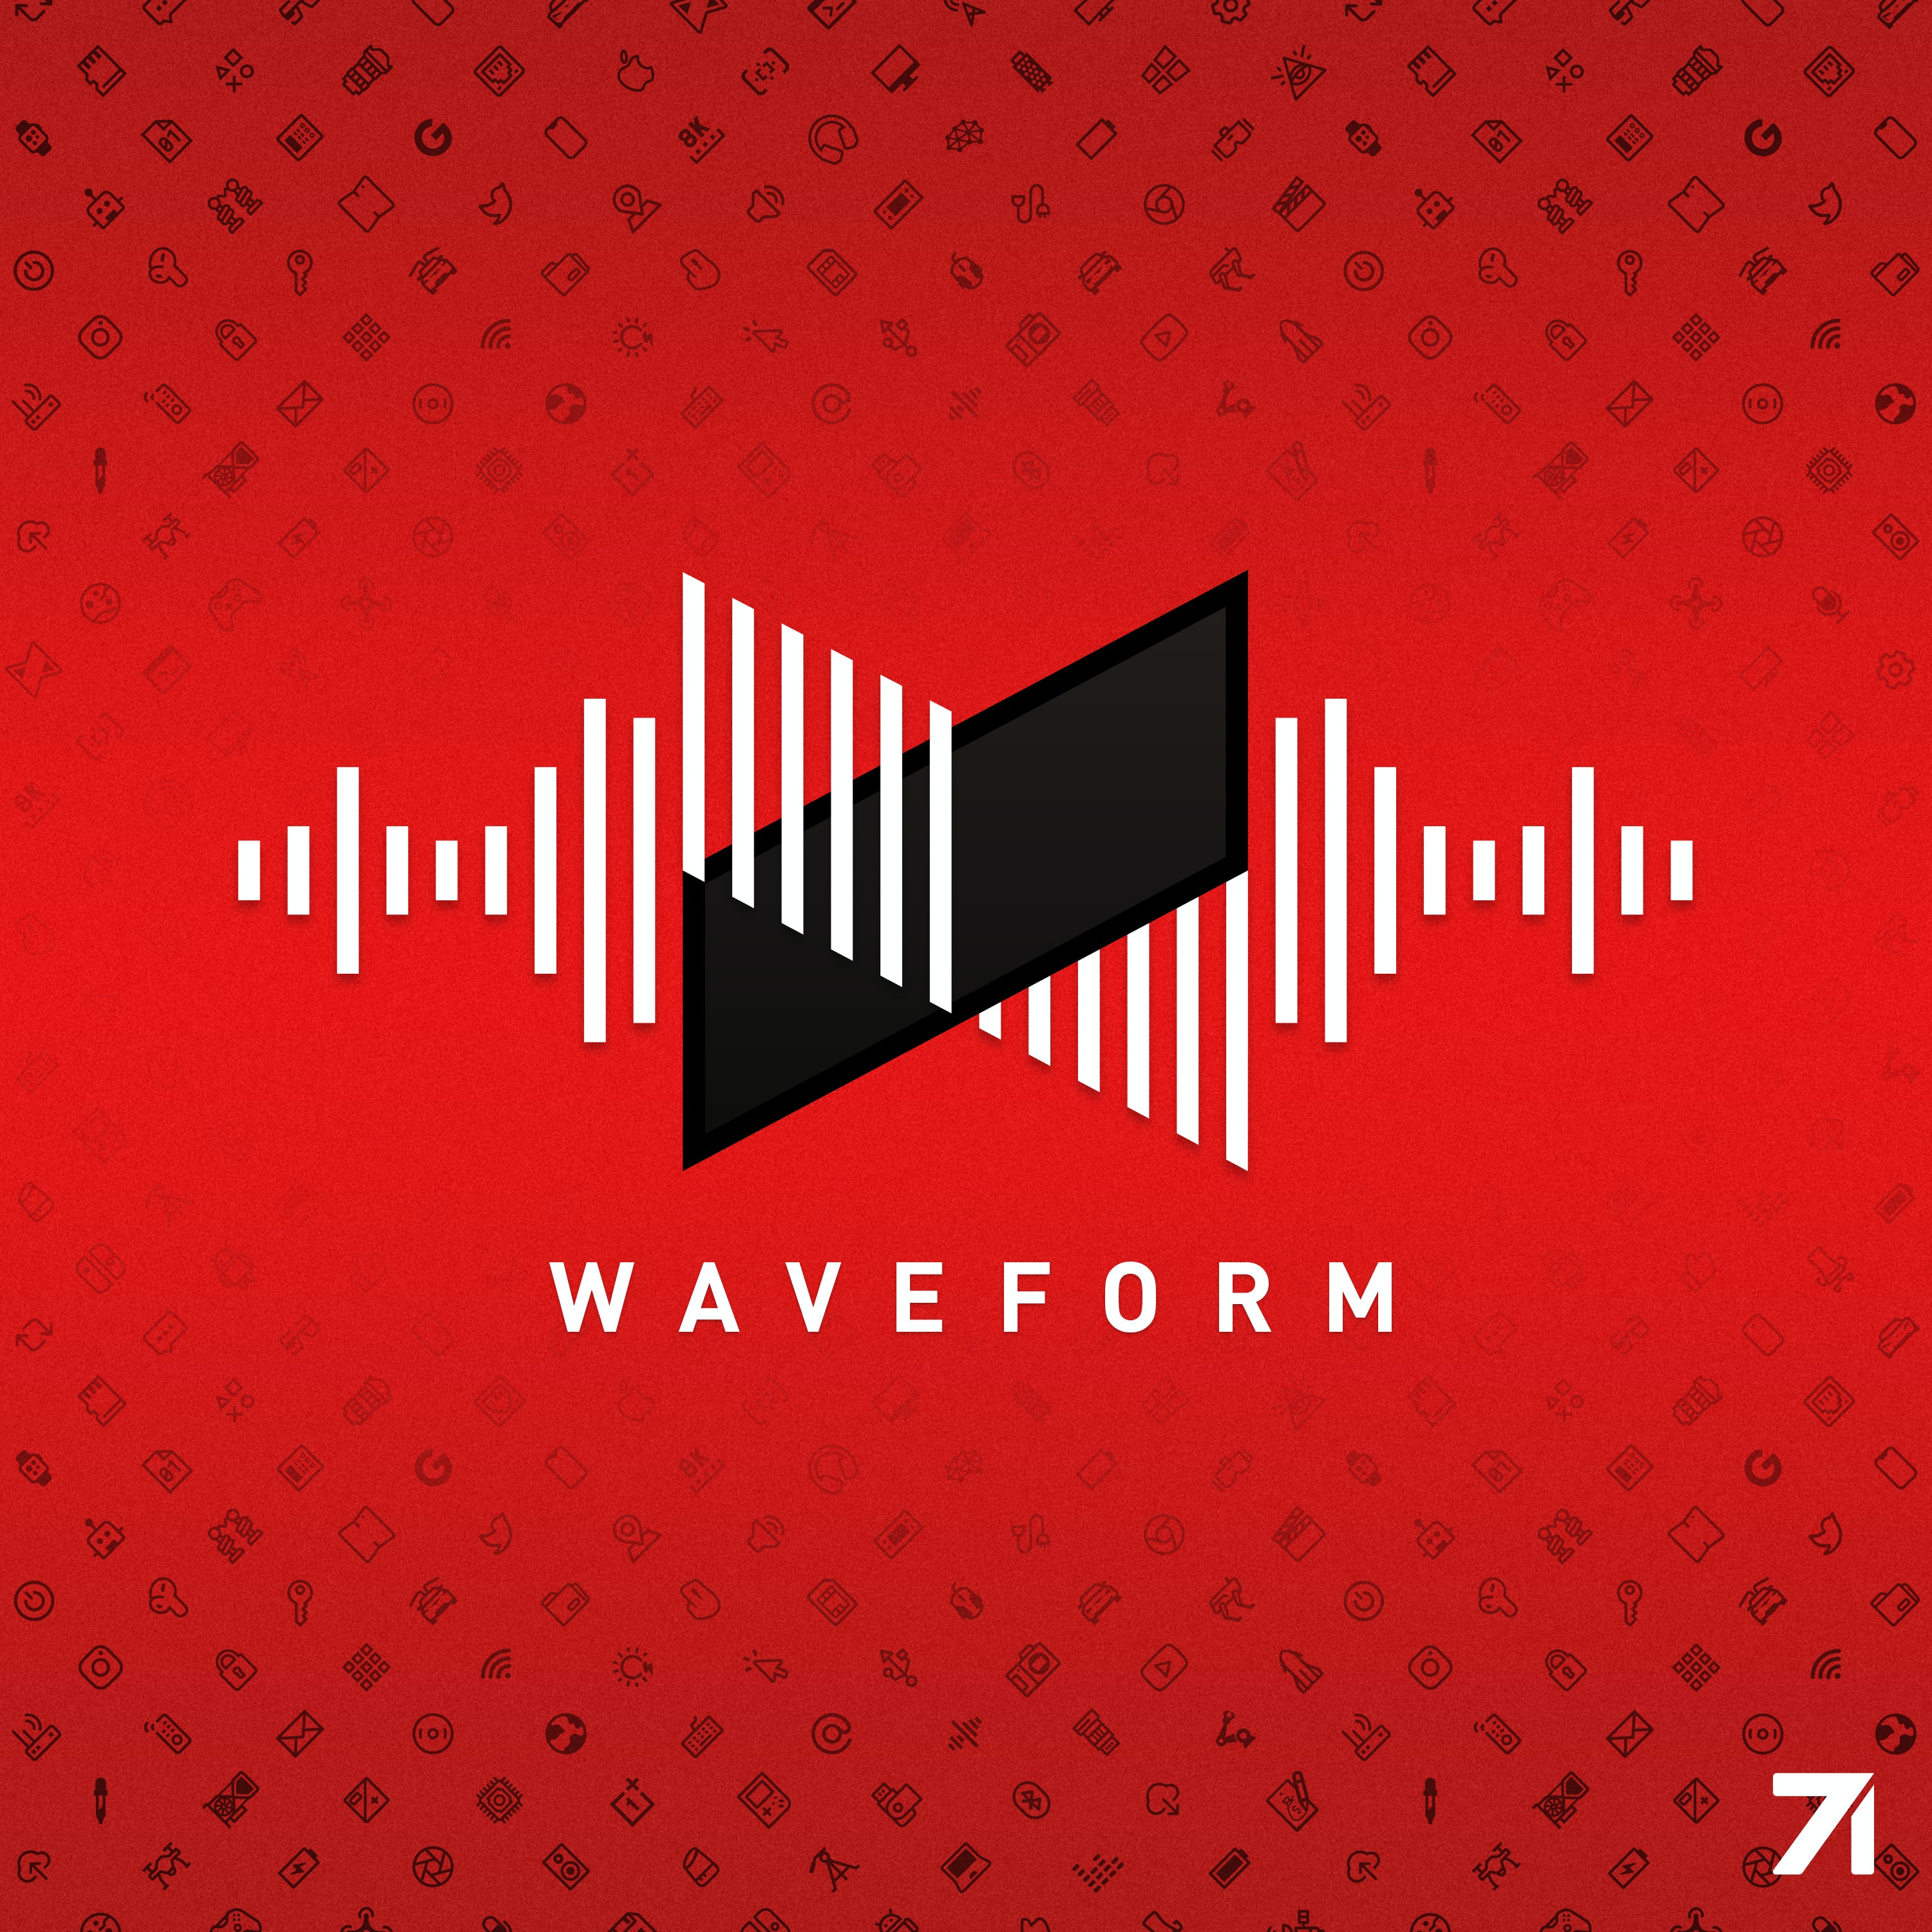 Waveform: The MKBHD Podcast podcast